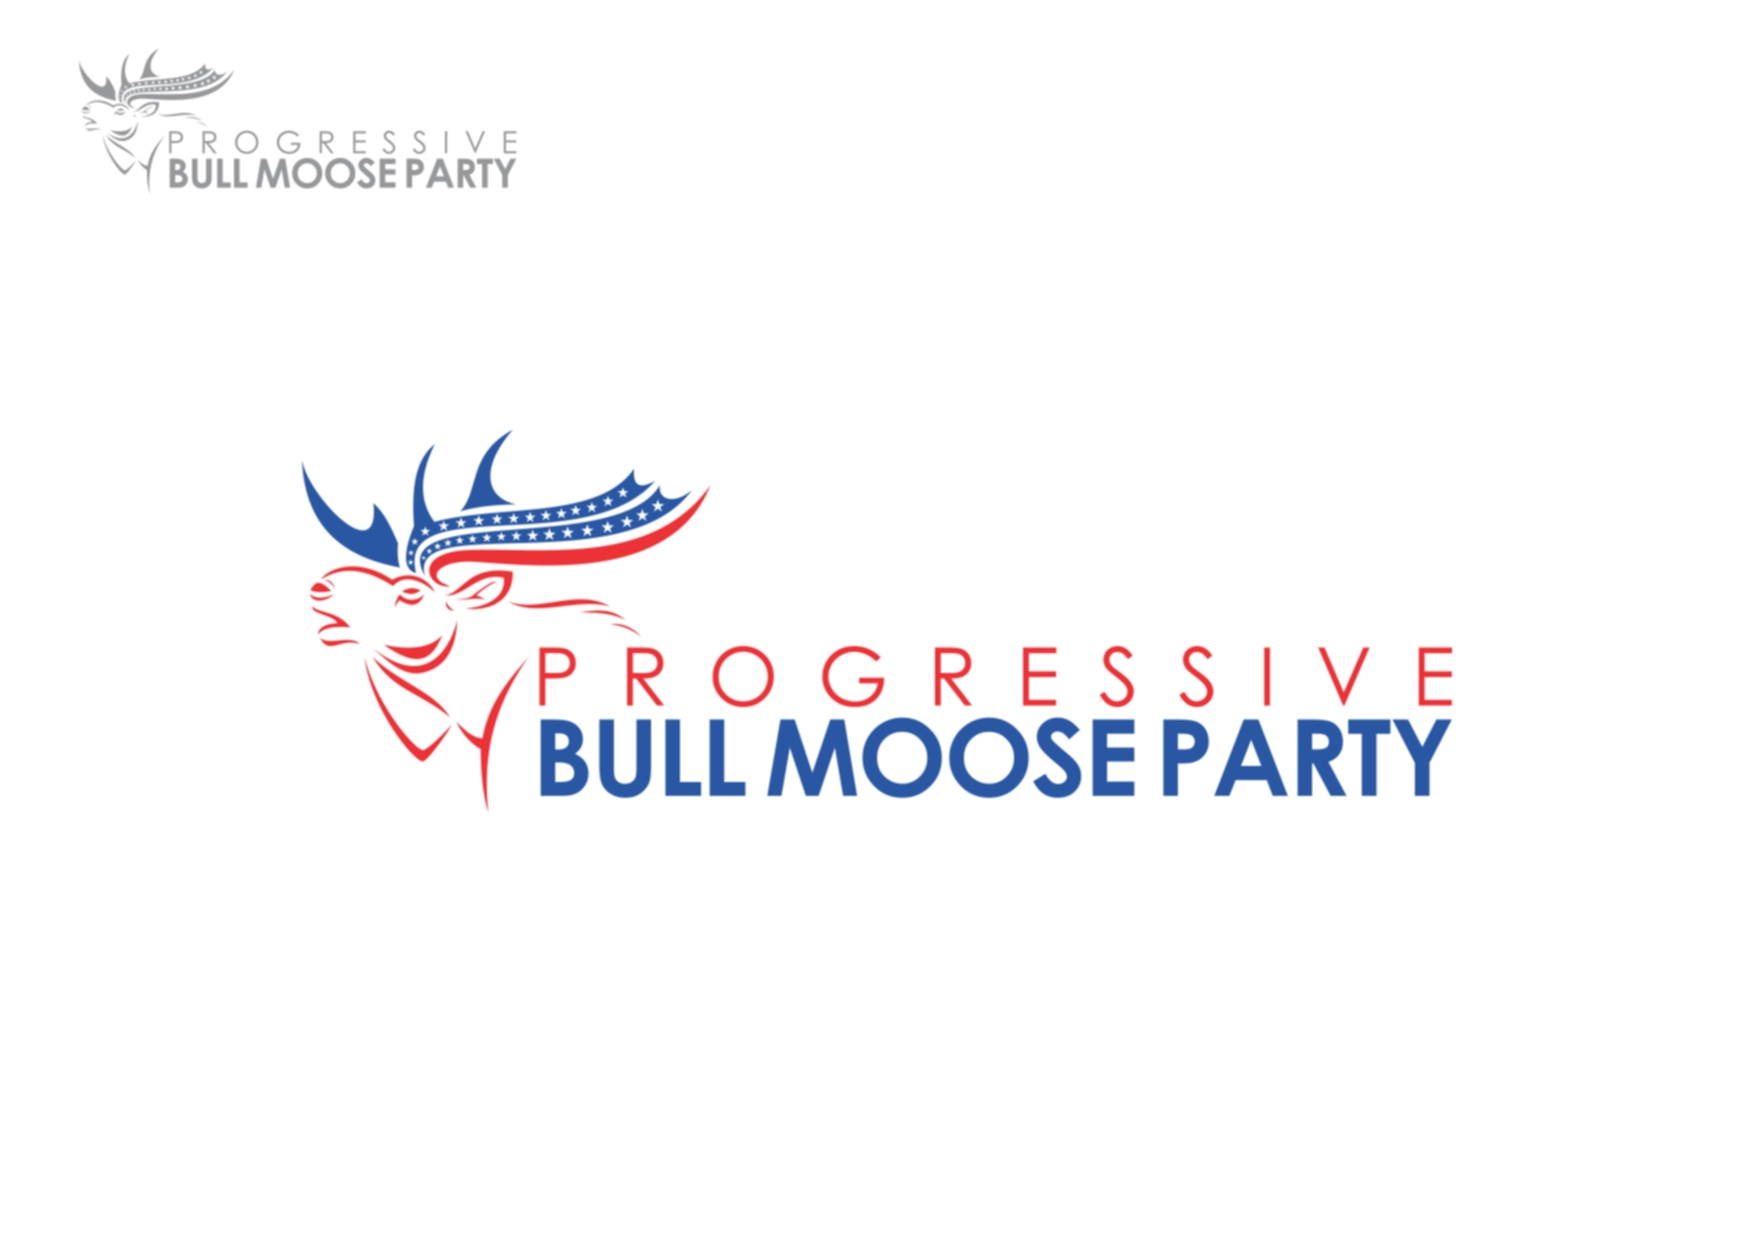 Logo Design by Private User - Entry No. 28 in the Logo Design Contest Progressive Bull Moose Party Logo Design.